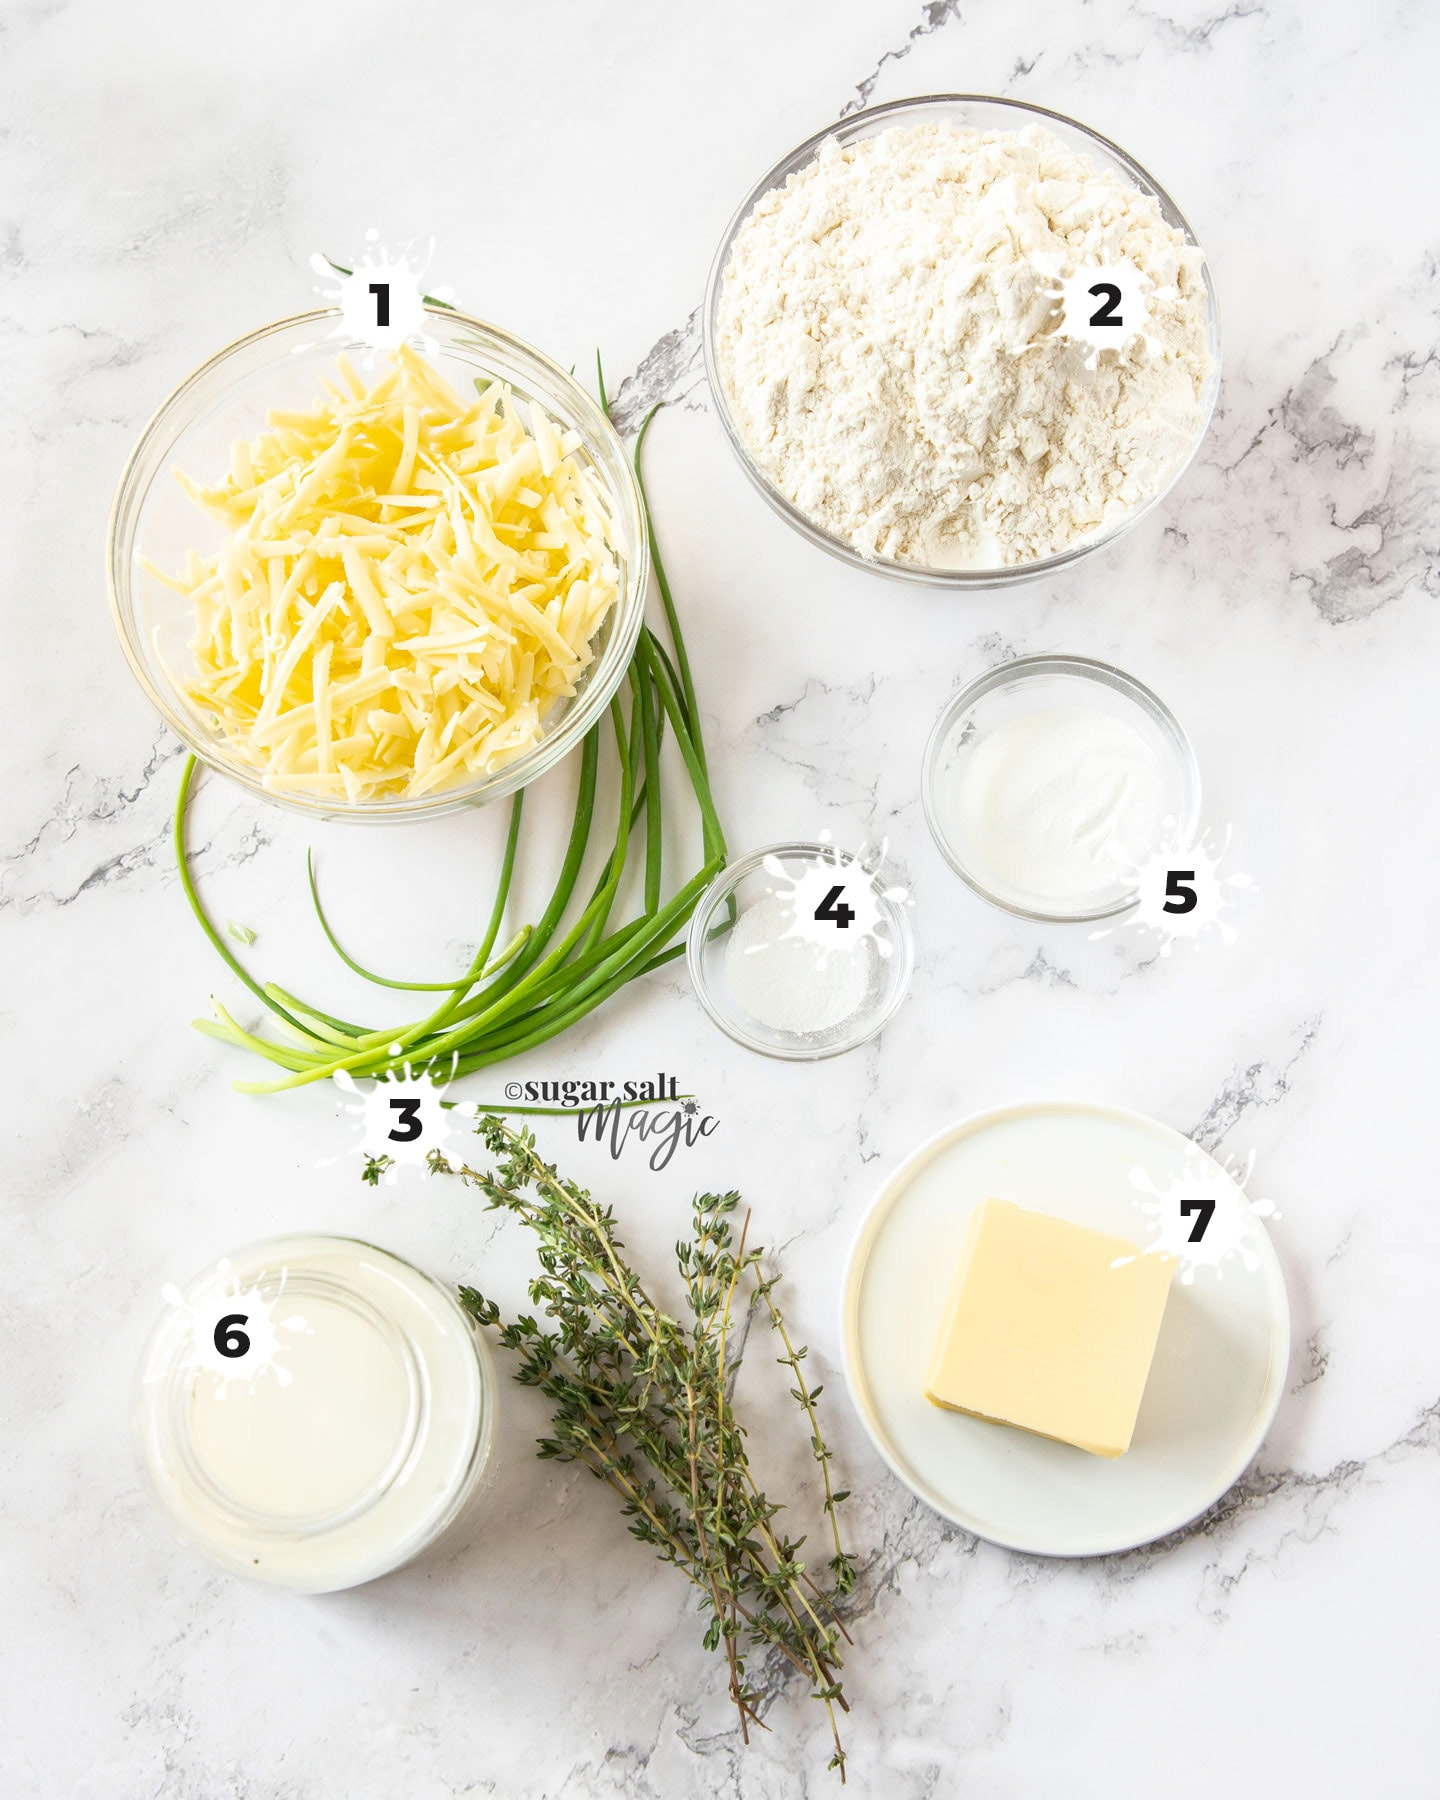 Ingredients for herb and cheddar scones